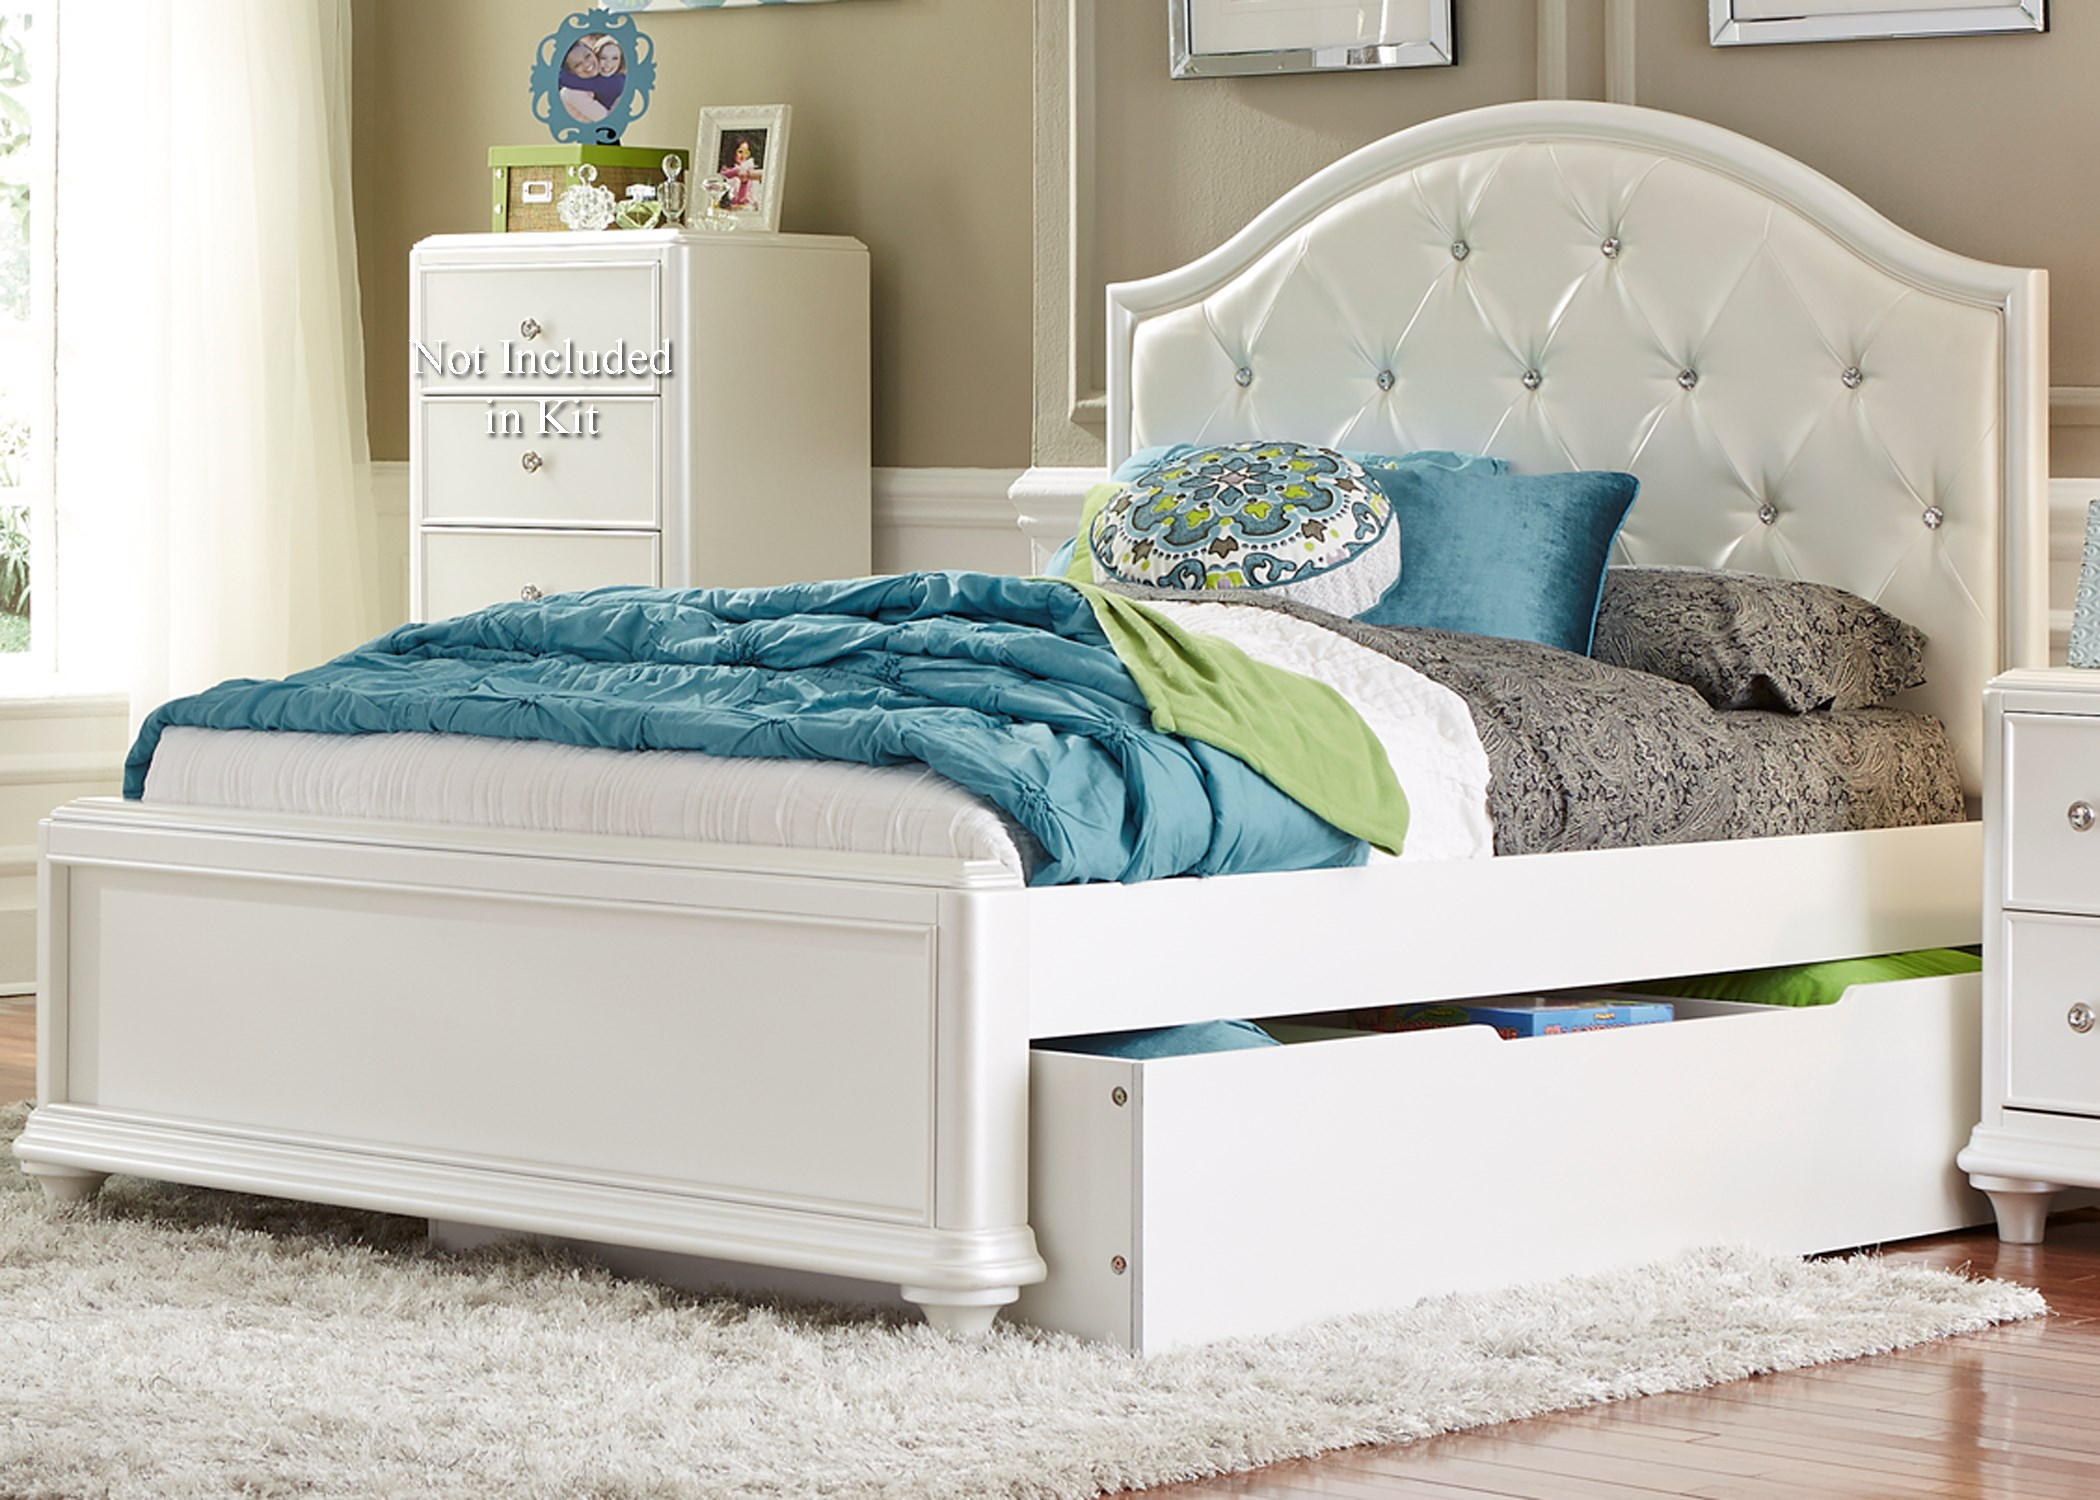 Bed Headboard Stardust Twin Trundle Bed With Tufted Headboard By Liberty Furniture At Rotmans